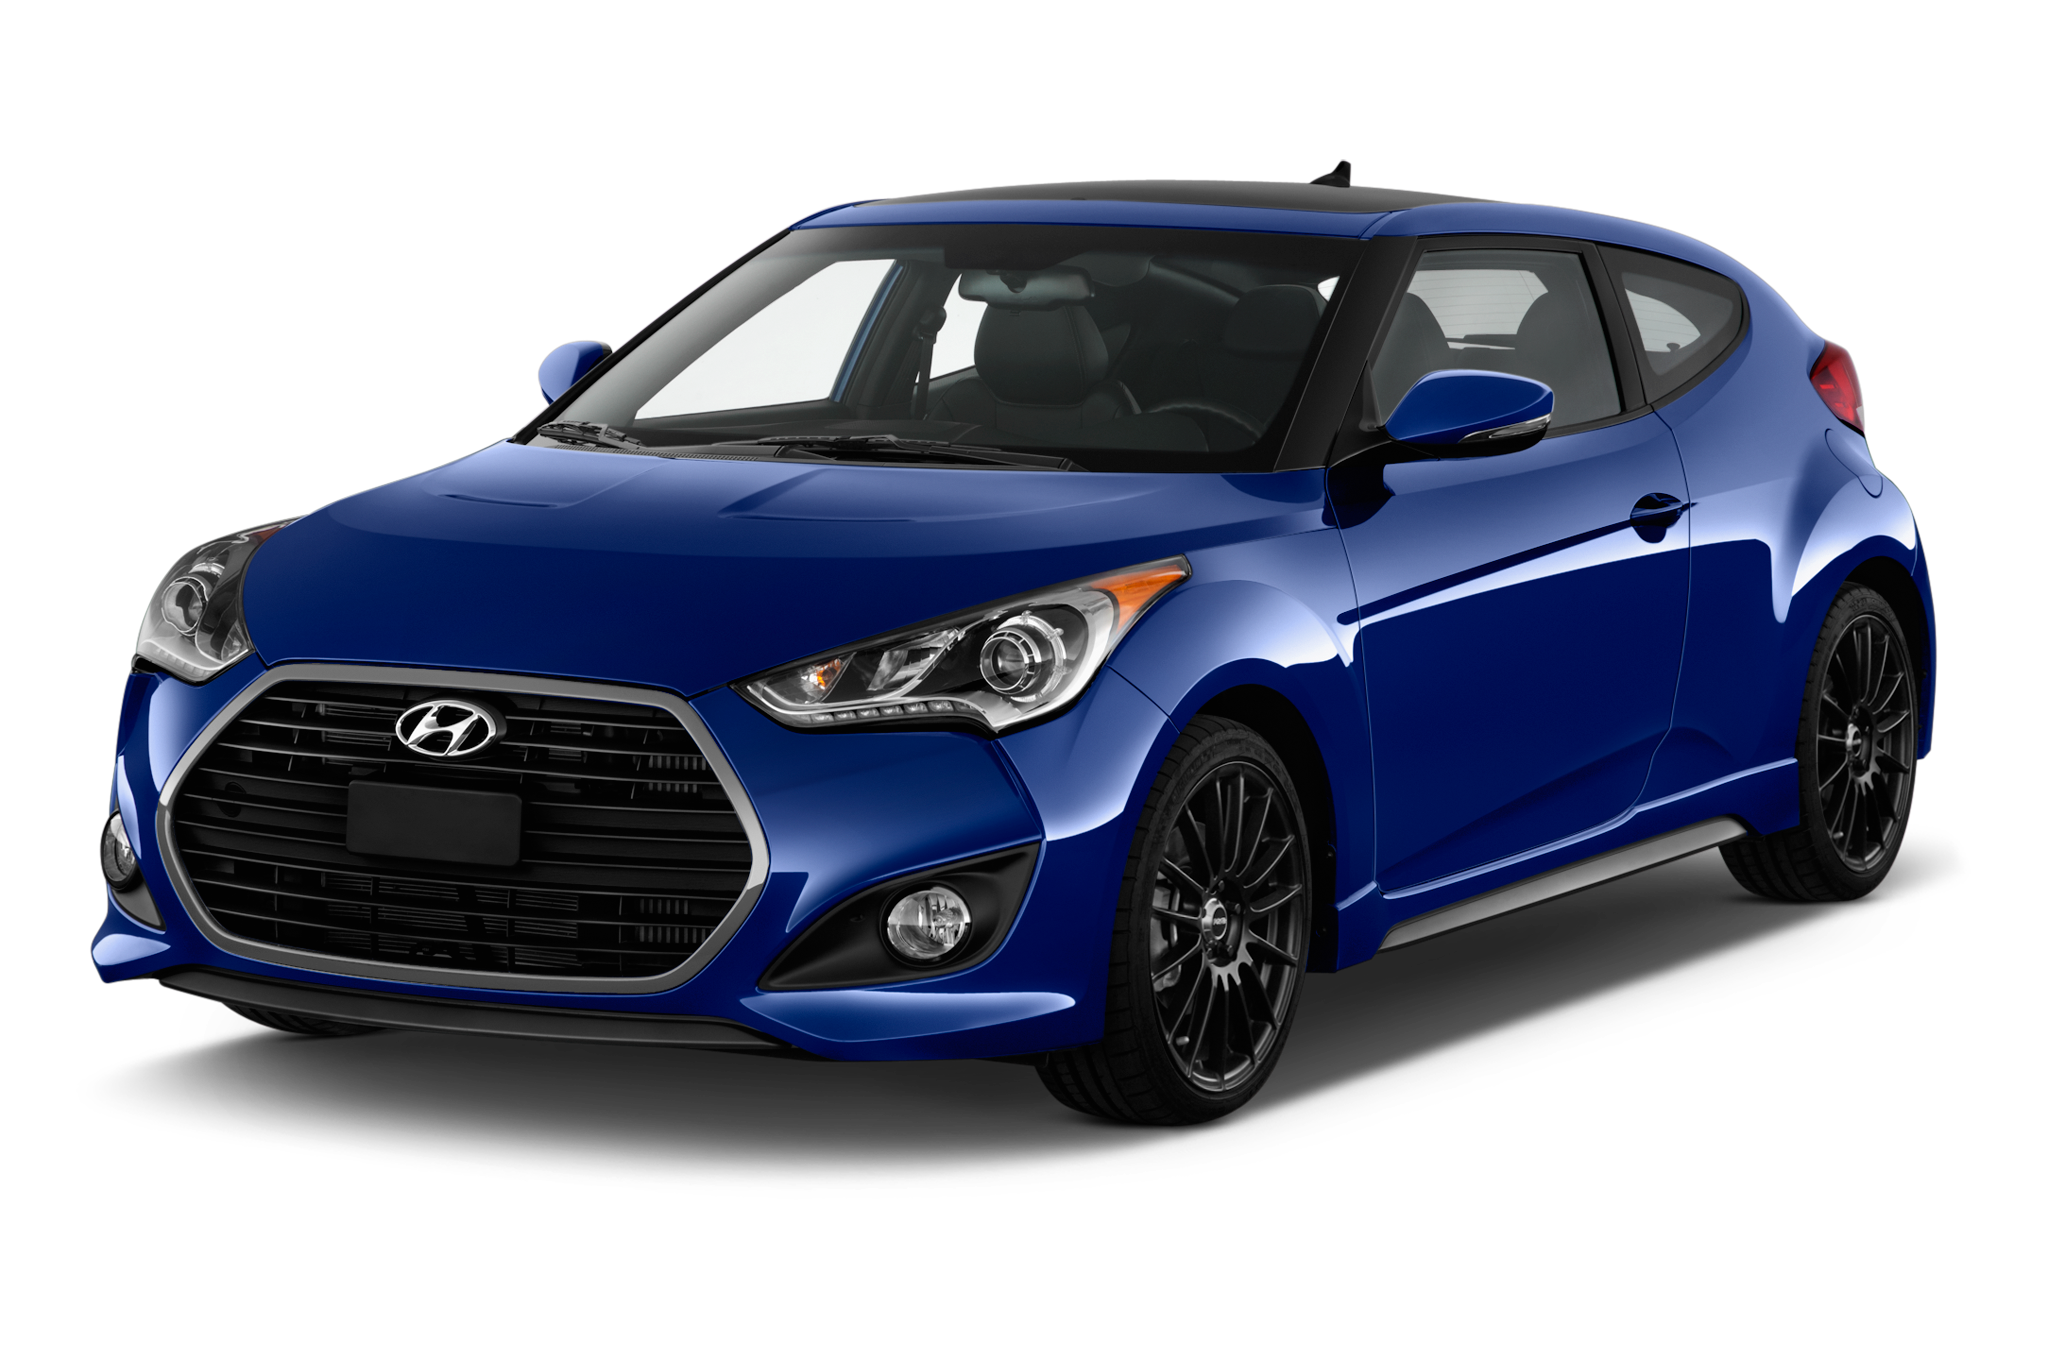 2016 Hyundai Veloster Reviews.